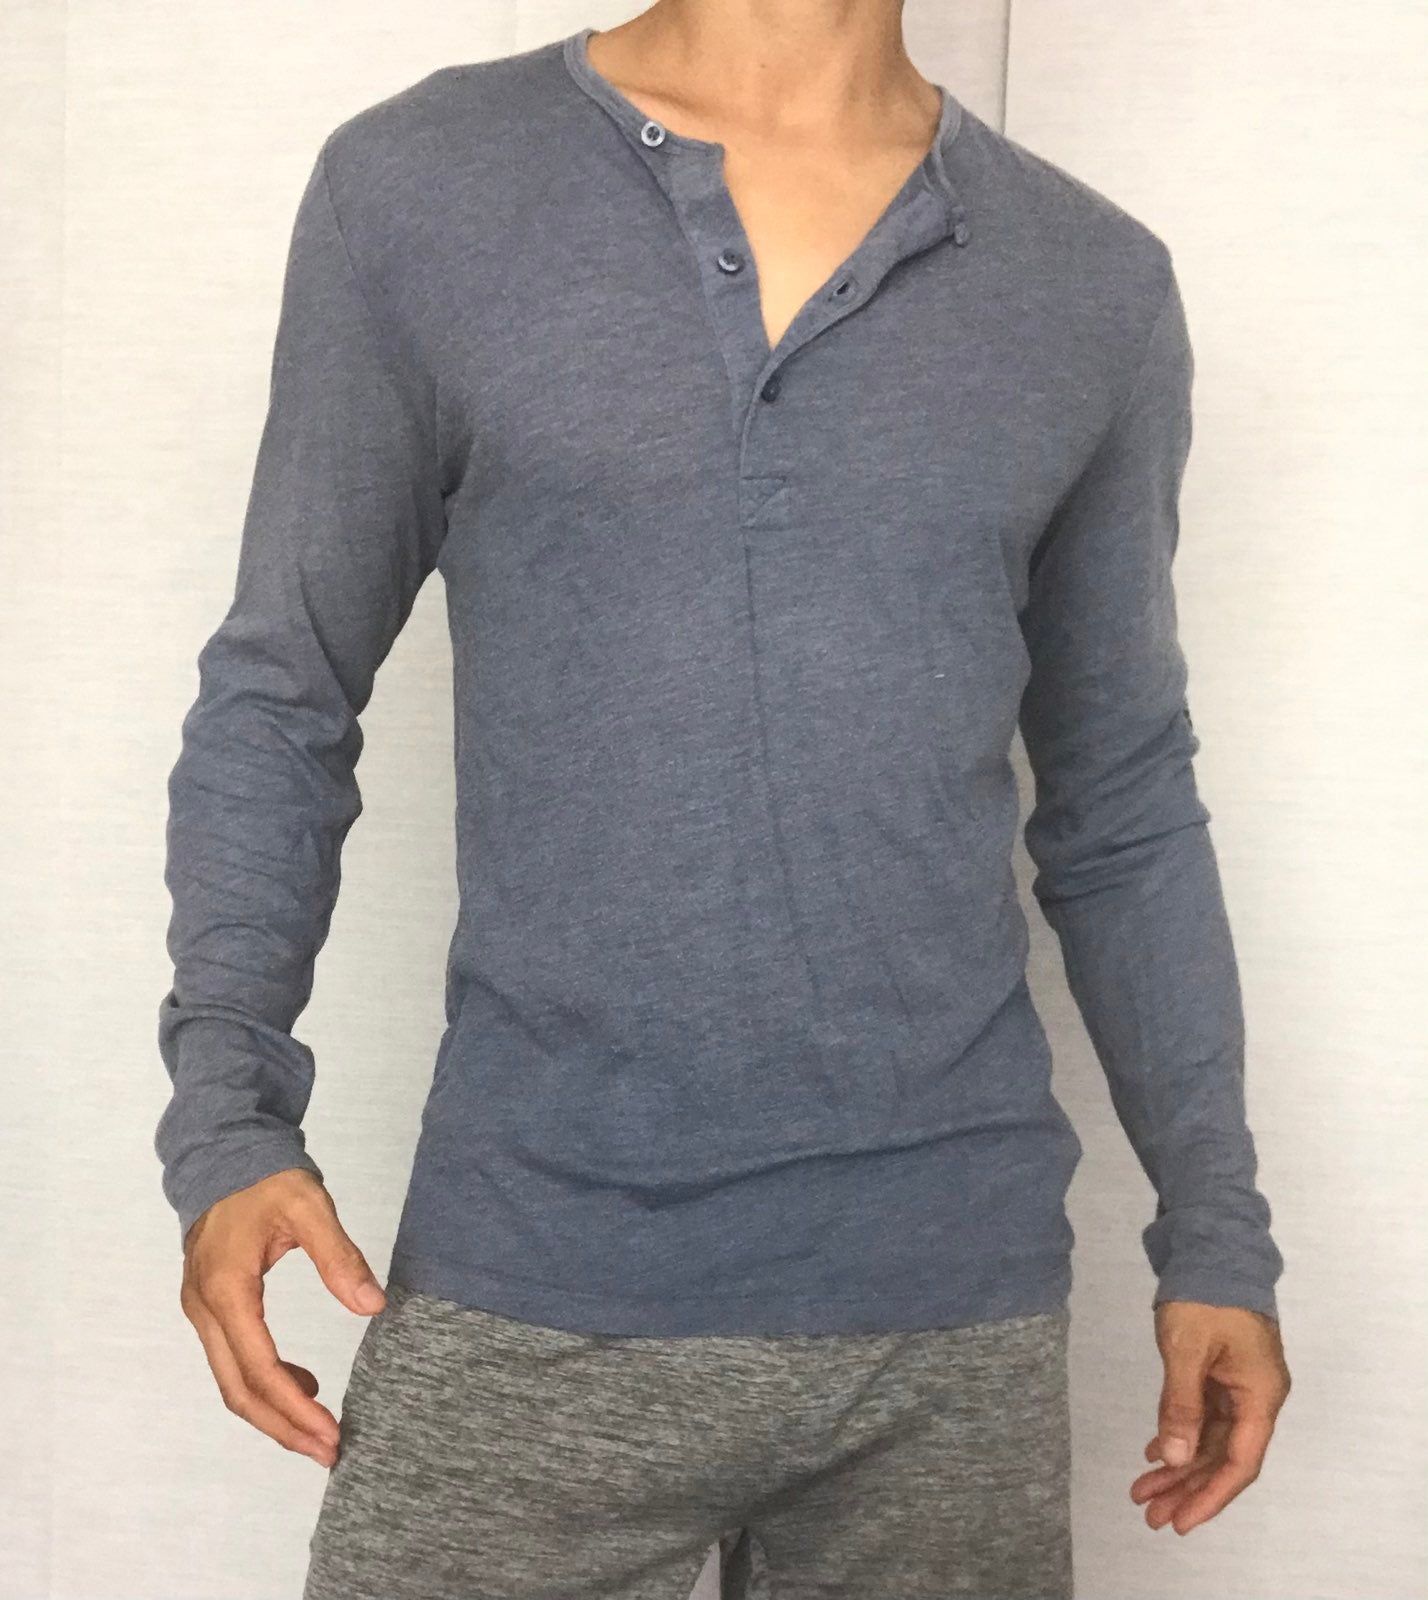 H&M long sleeve fitted henley mens